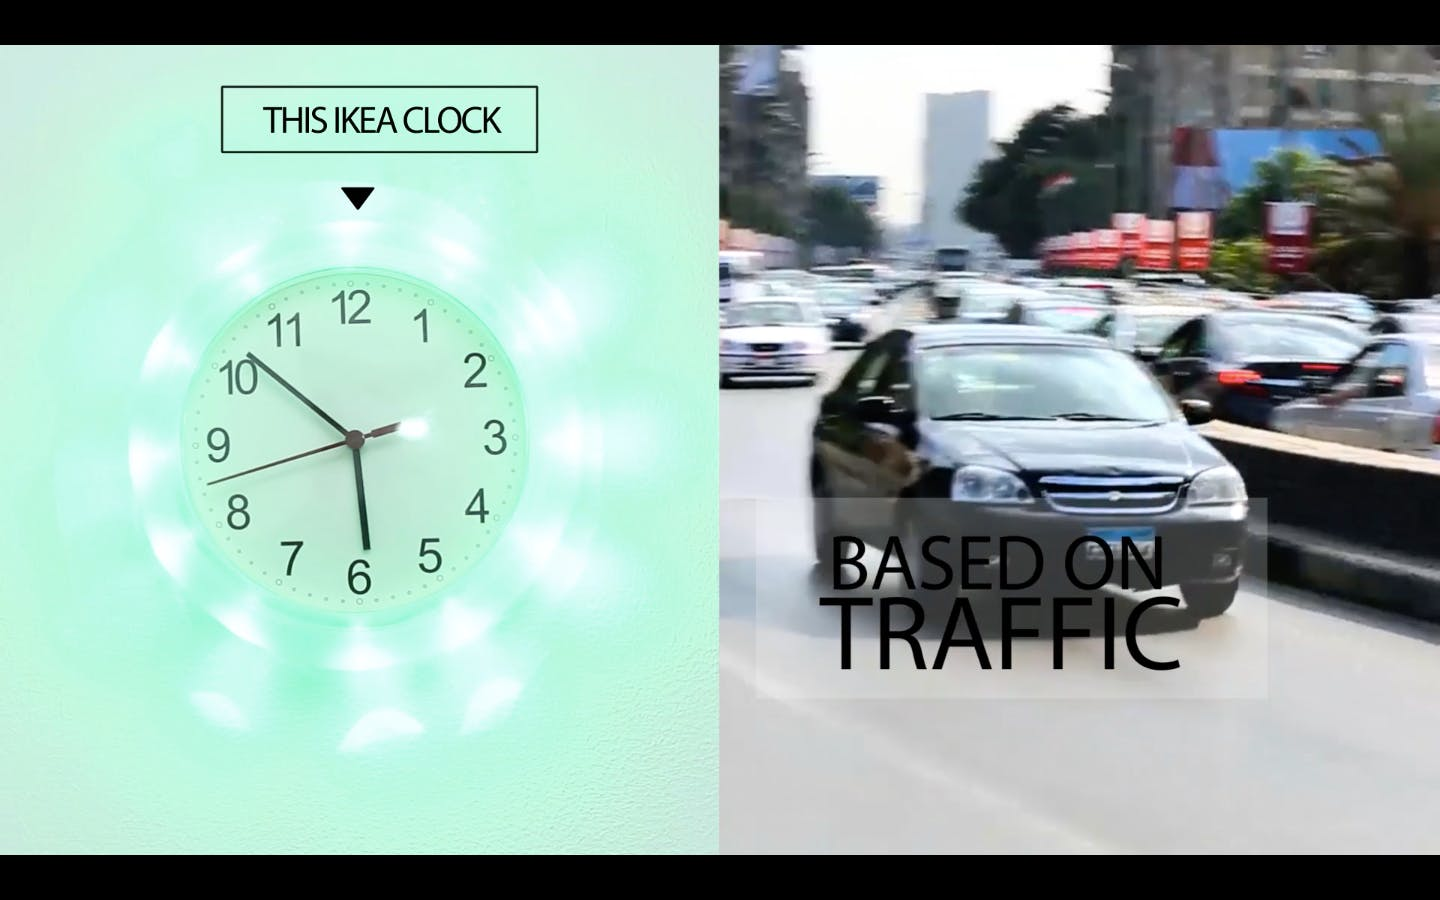 Display Traffic Status Using Arduino & 1Sheeld